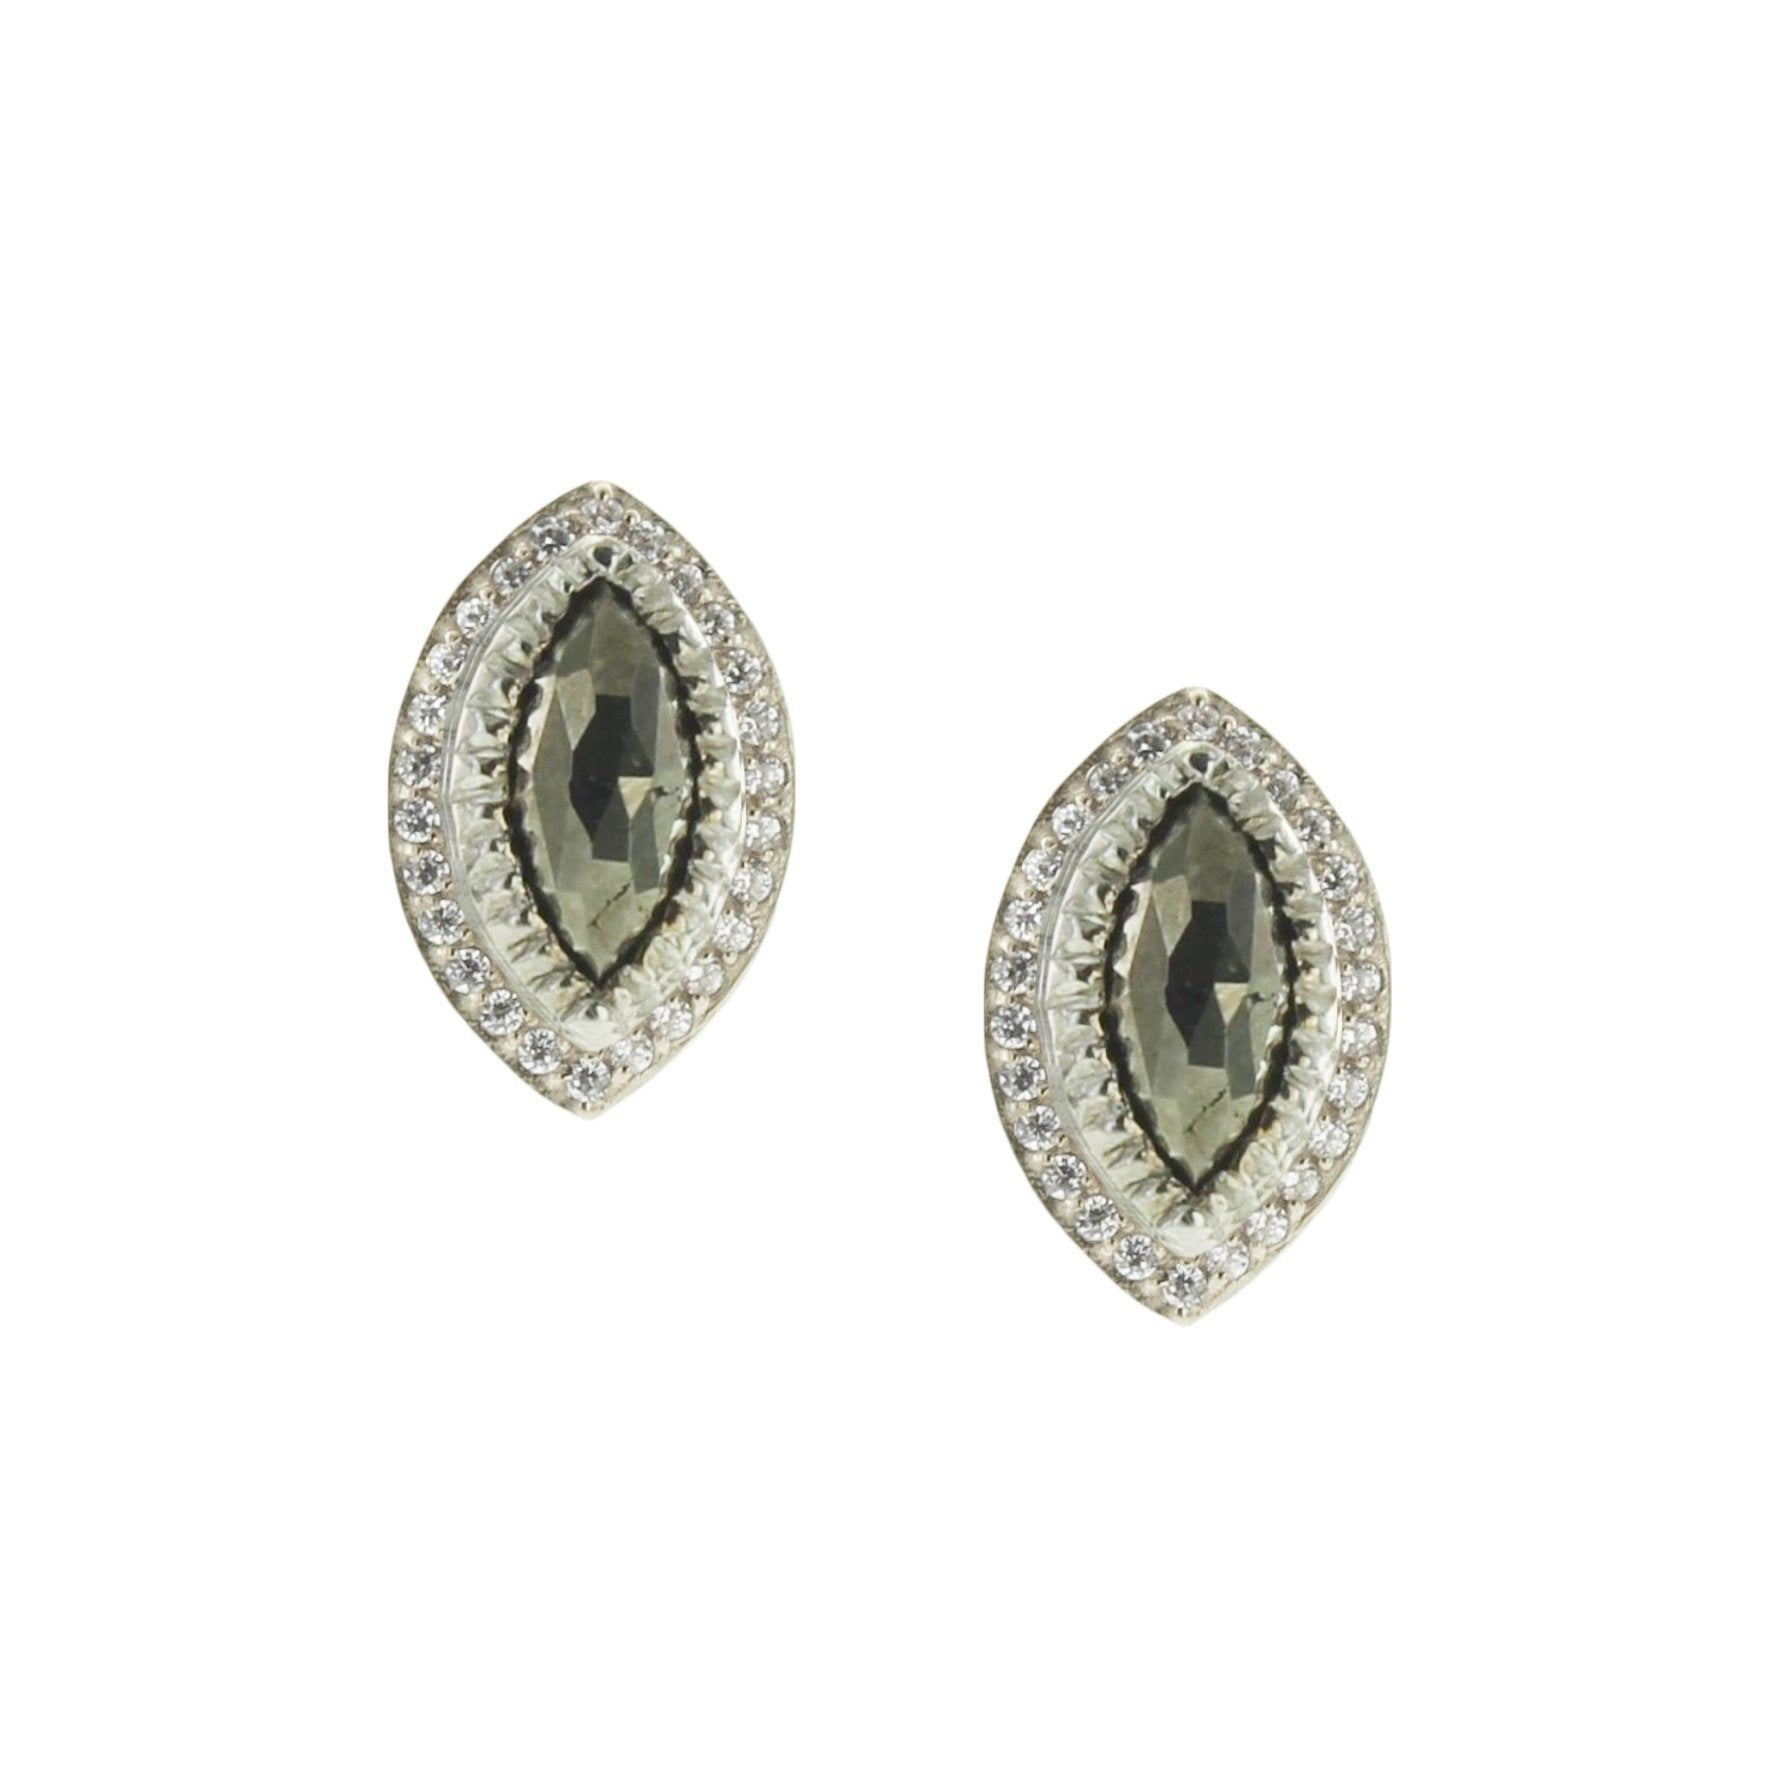 IMAGINE STUDS - METALLIC PYRITE, CUBIC ZIRCONIA, & SILVER - SO PRETTY CARA COTTER